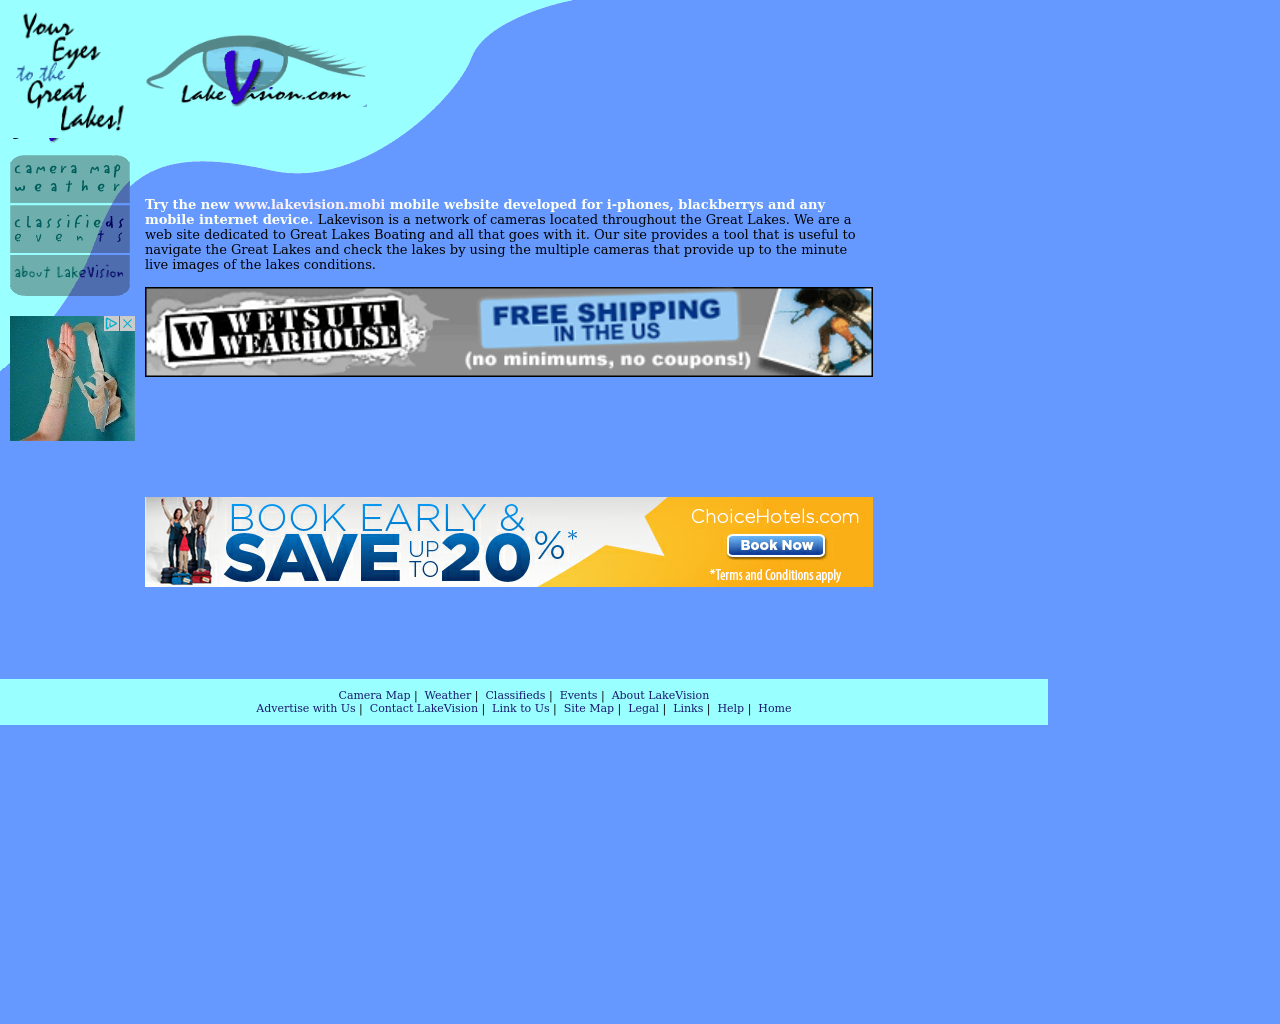 Lakevision-Advertising-Reviews-Pricing